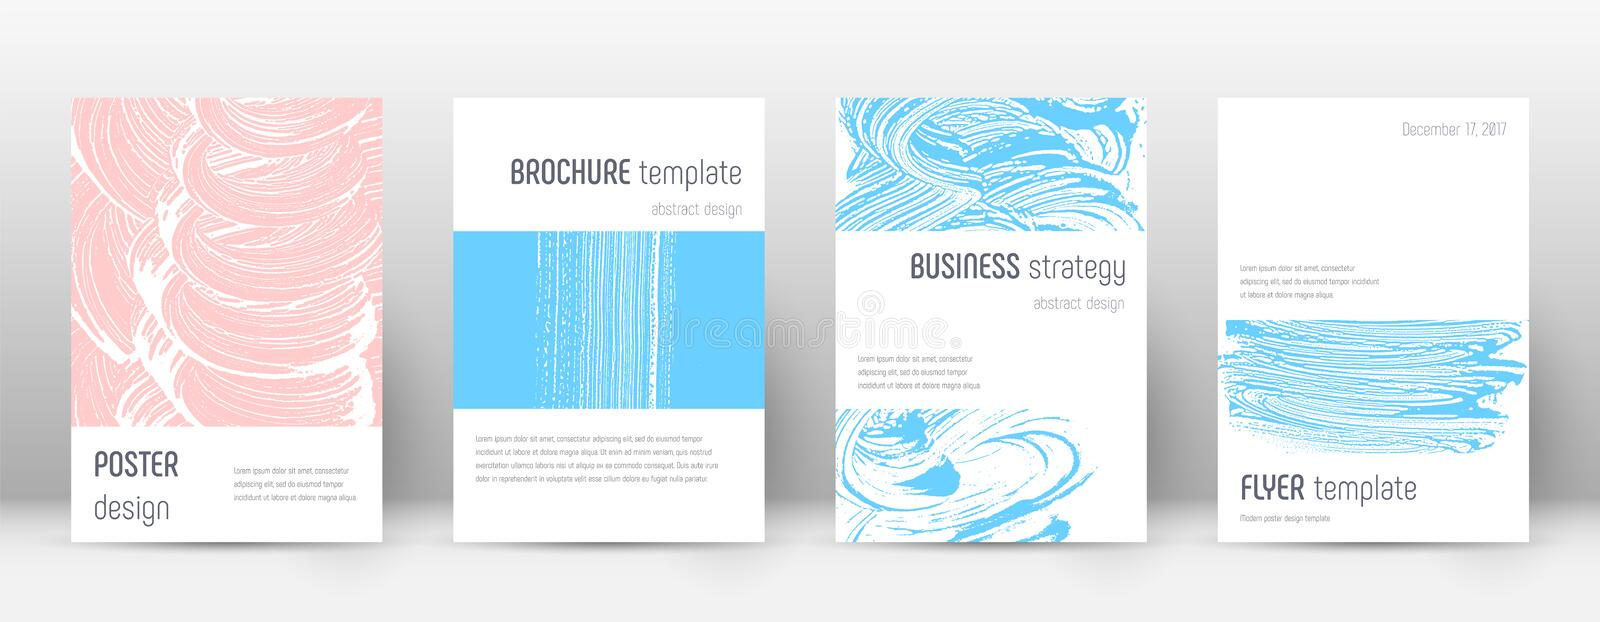 Cover page design template. Minimalistic brochure layout. Breathtaking trendy abstract cover page. Pink and blue grunge texture background. Fine poster vector illustration